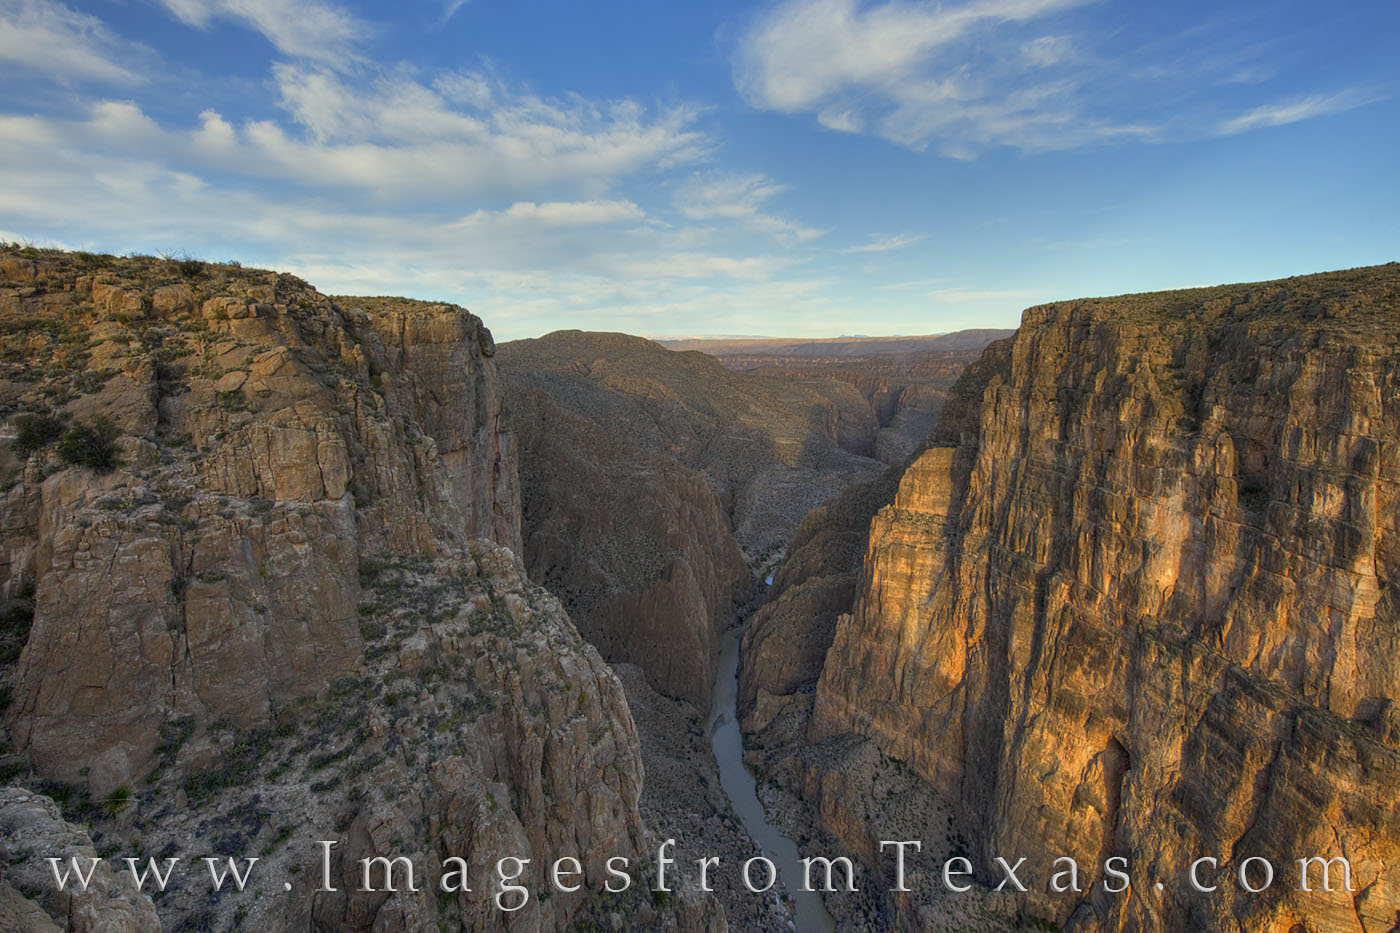 Mariscal Canyon, Big Bend national park, Big bend canyon, canyon, big bend, national park, hiking, hiking texas, texas outdoors, texas national parks, rio grande, mexico, talley, river road east, rive, photo